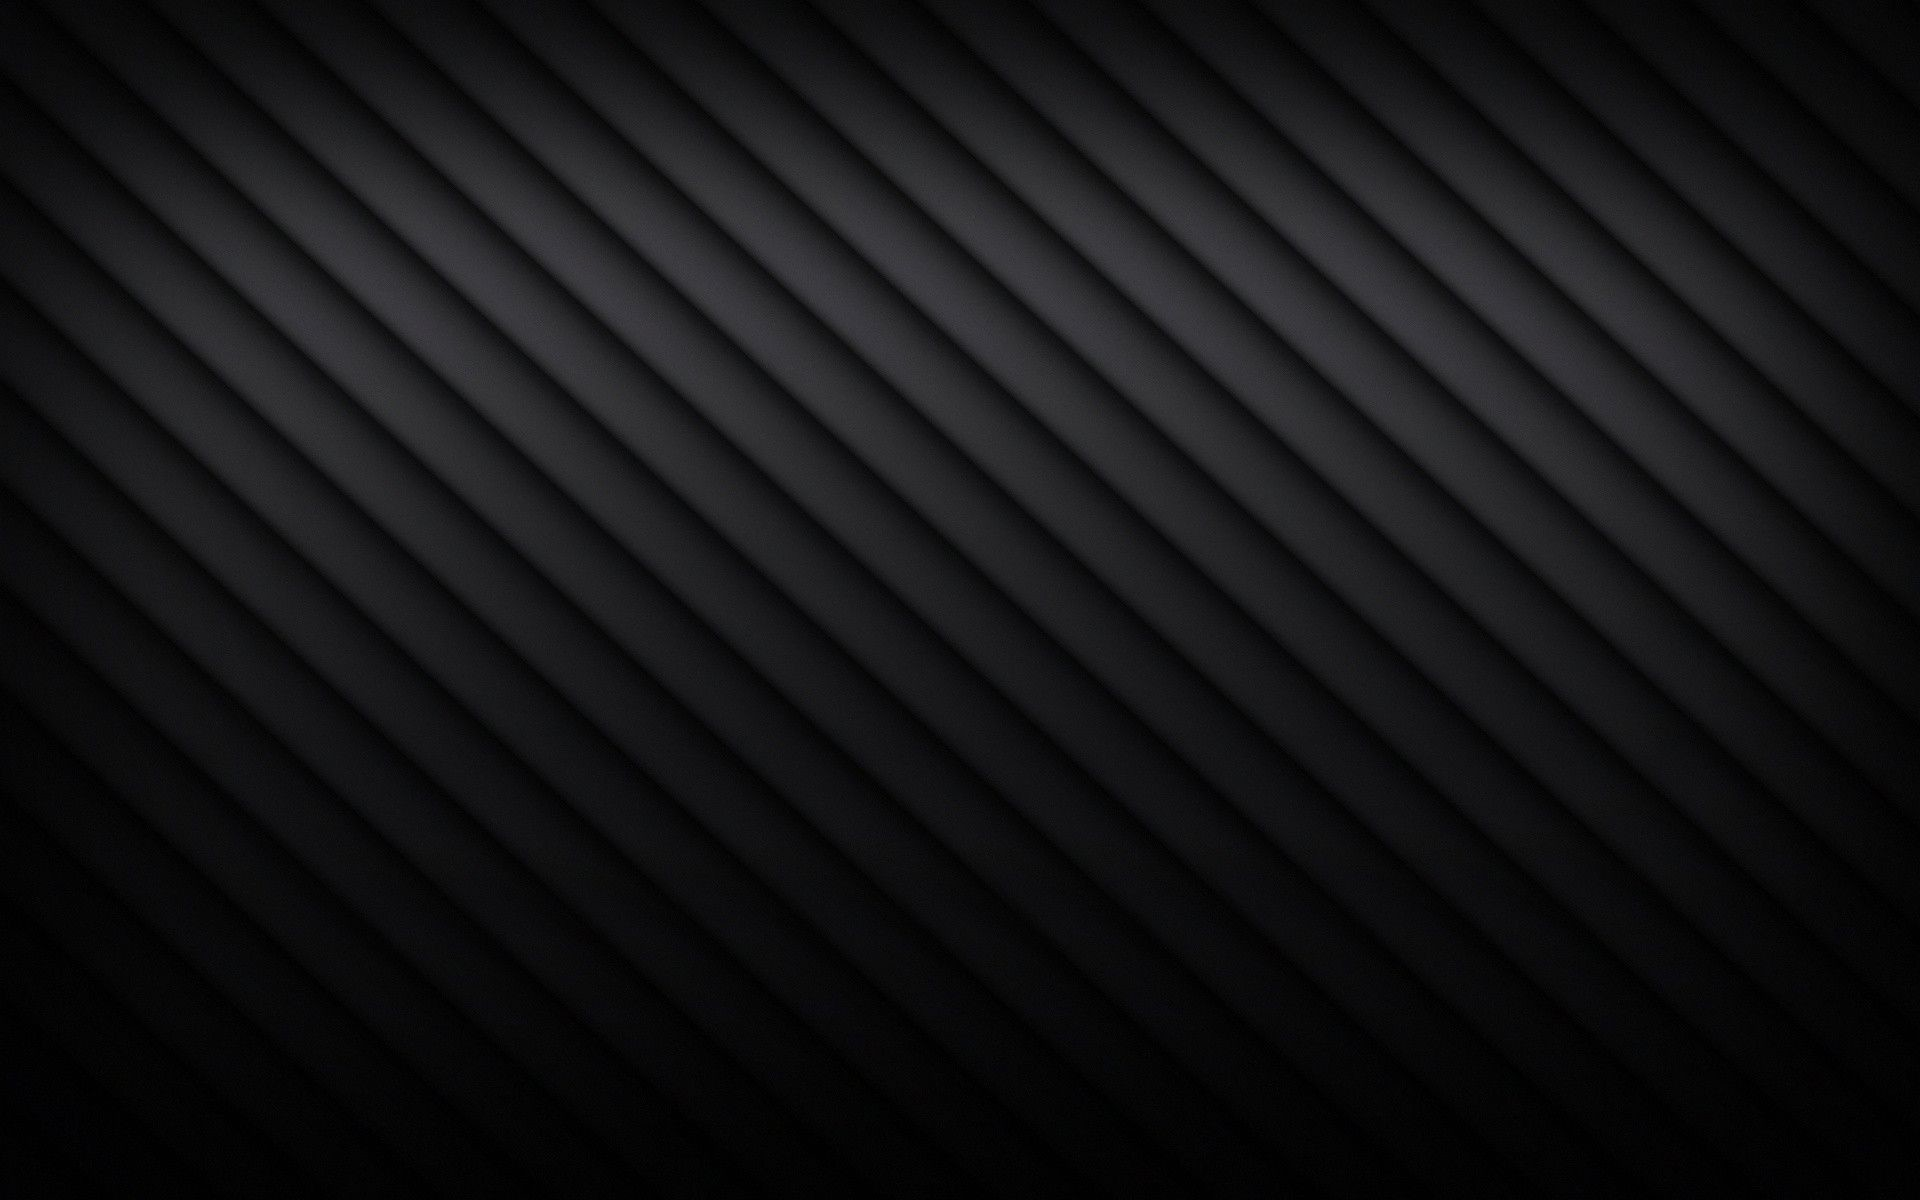 1920x1200 Black Abstract Wallpaper Background